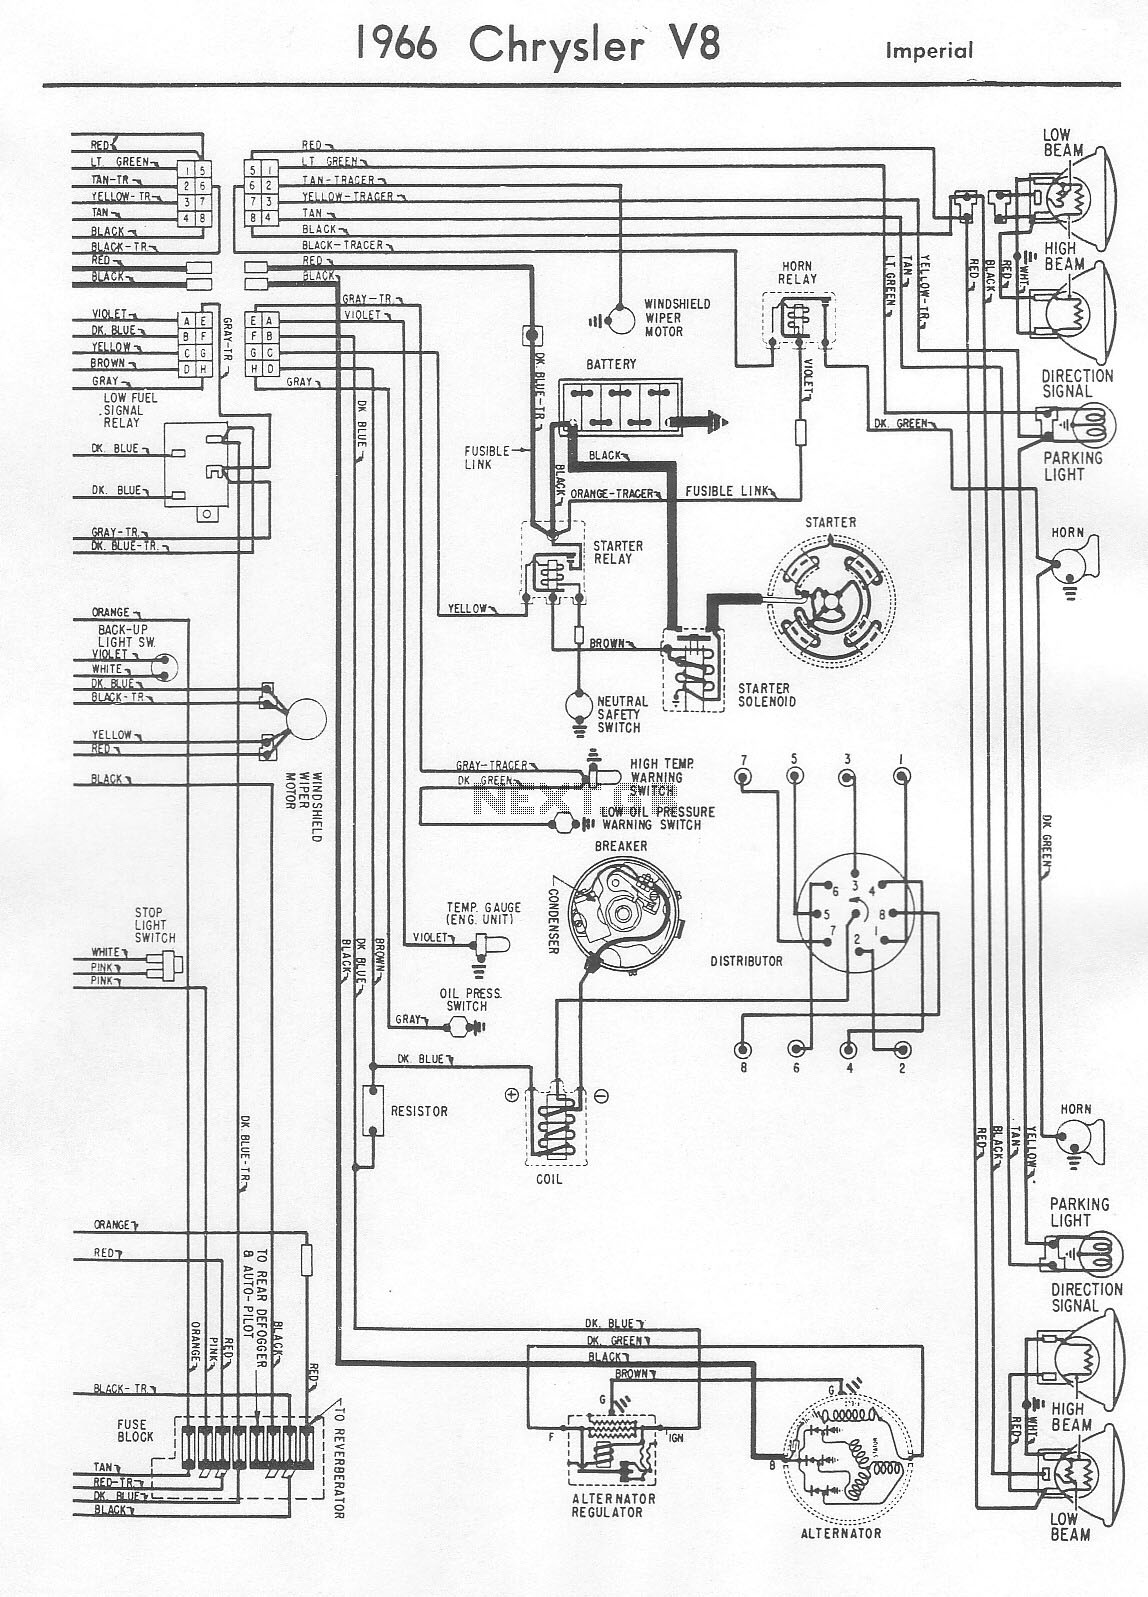 [DIAGRAM_5NL]  C855FD 1966 Chrysler 300 Wiring Diagram | Wiring Resources | 1966 Chrysler 300 Electric Window Wiring Diagram |  | Wiring Resources